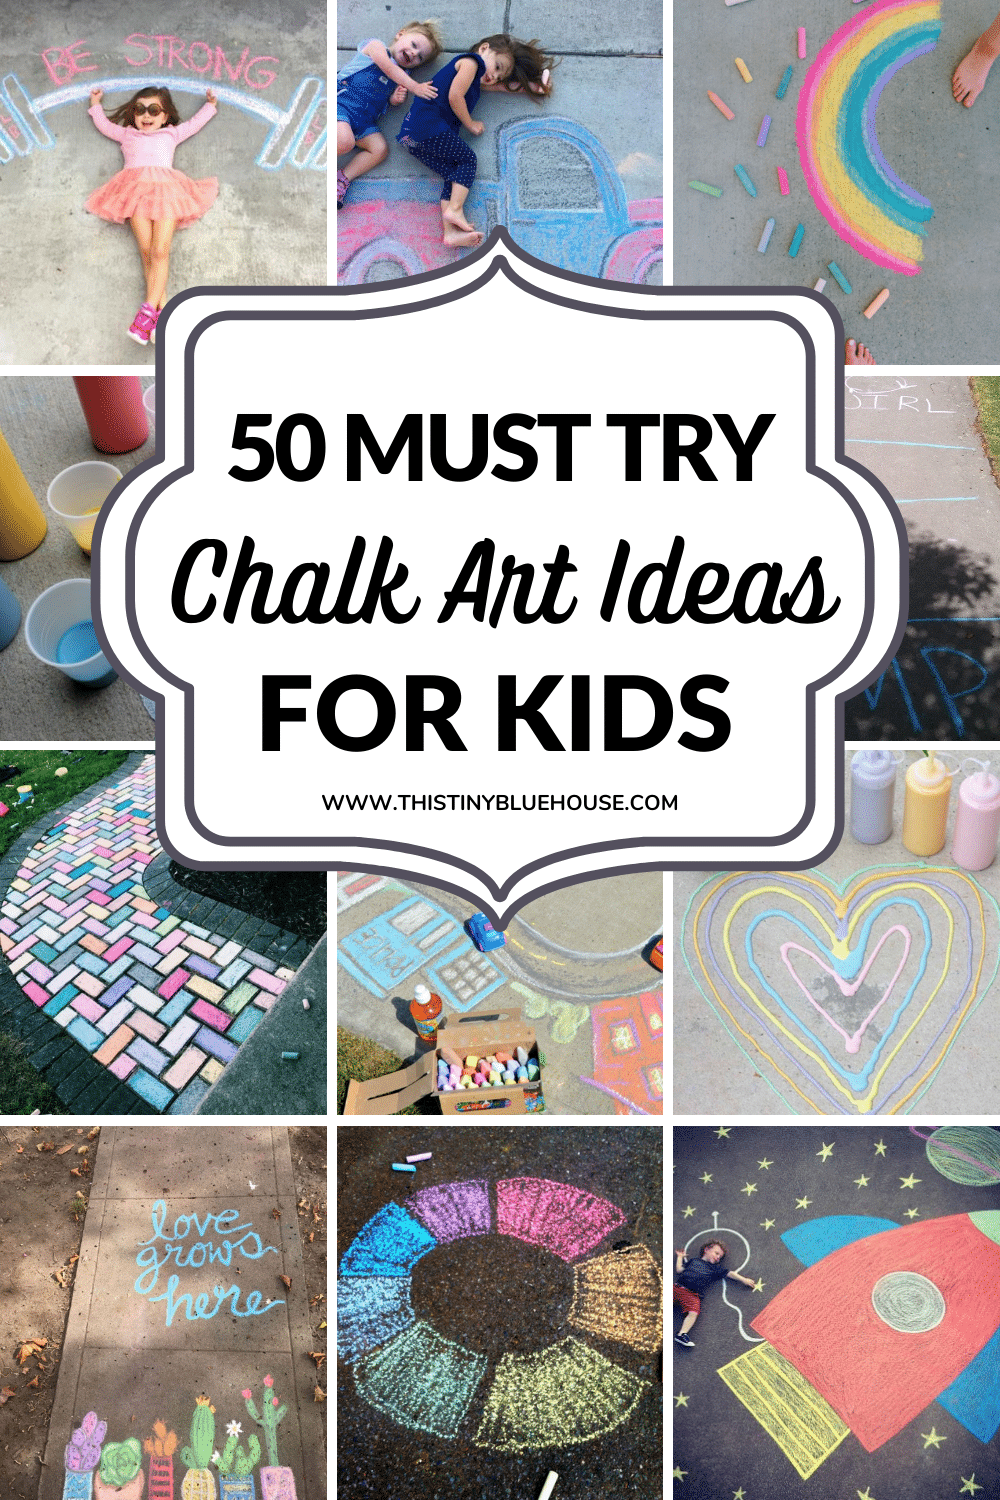 Here are 50 stunning chalk art projects that are guaranteed to inspire you this summer. These fun chalk art projects are a great way to spend warm summer days being creative with the kids.